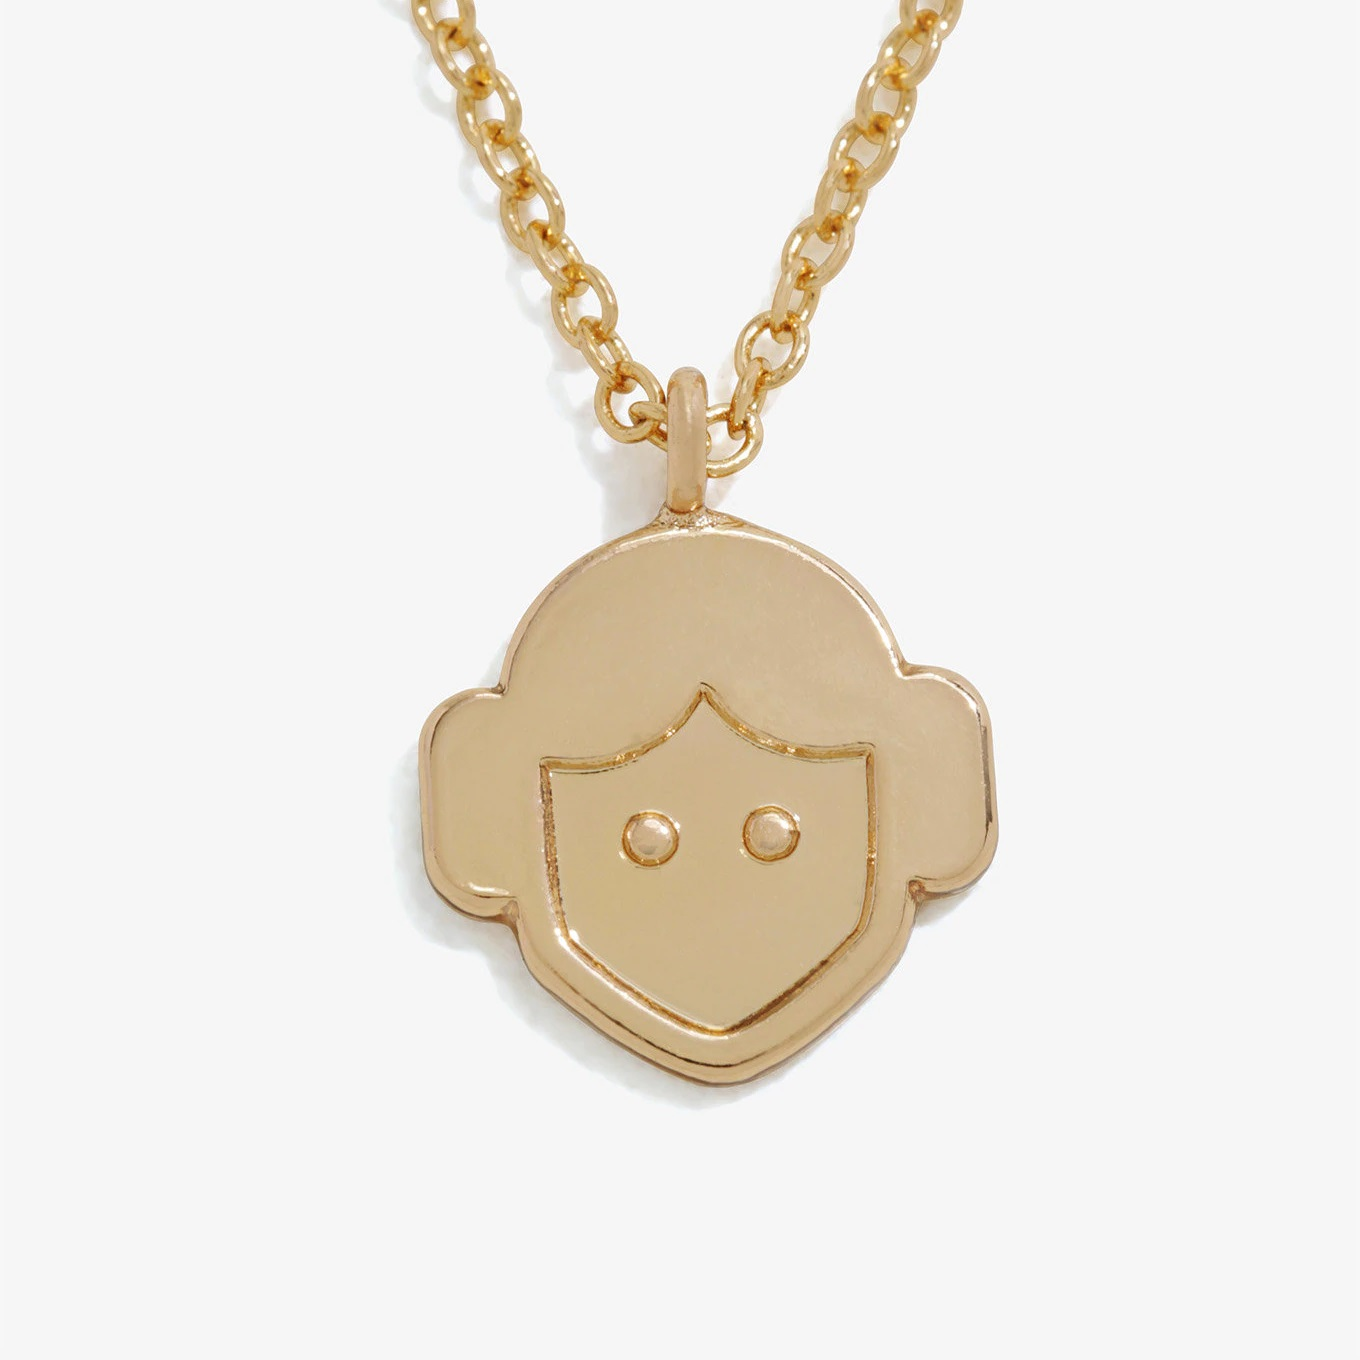 Love And Madness x Star Wars Princess Leia Emoji Necklace at Her Universe